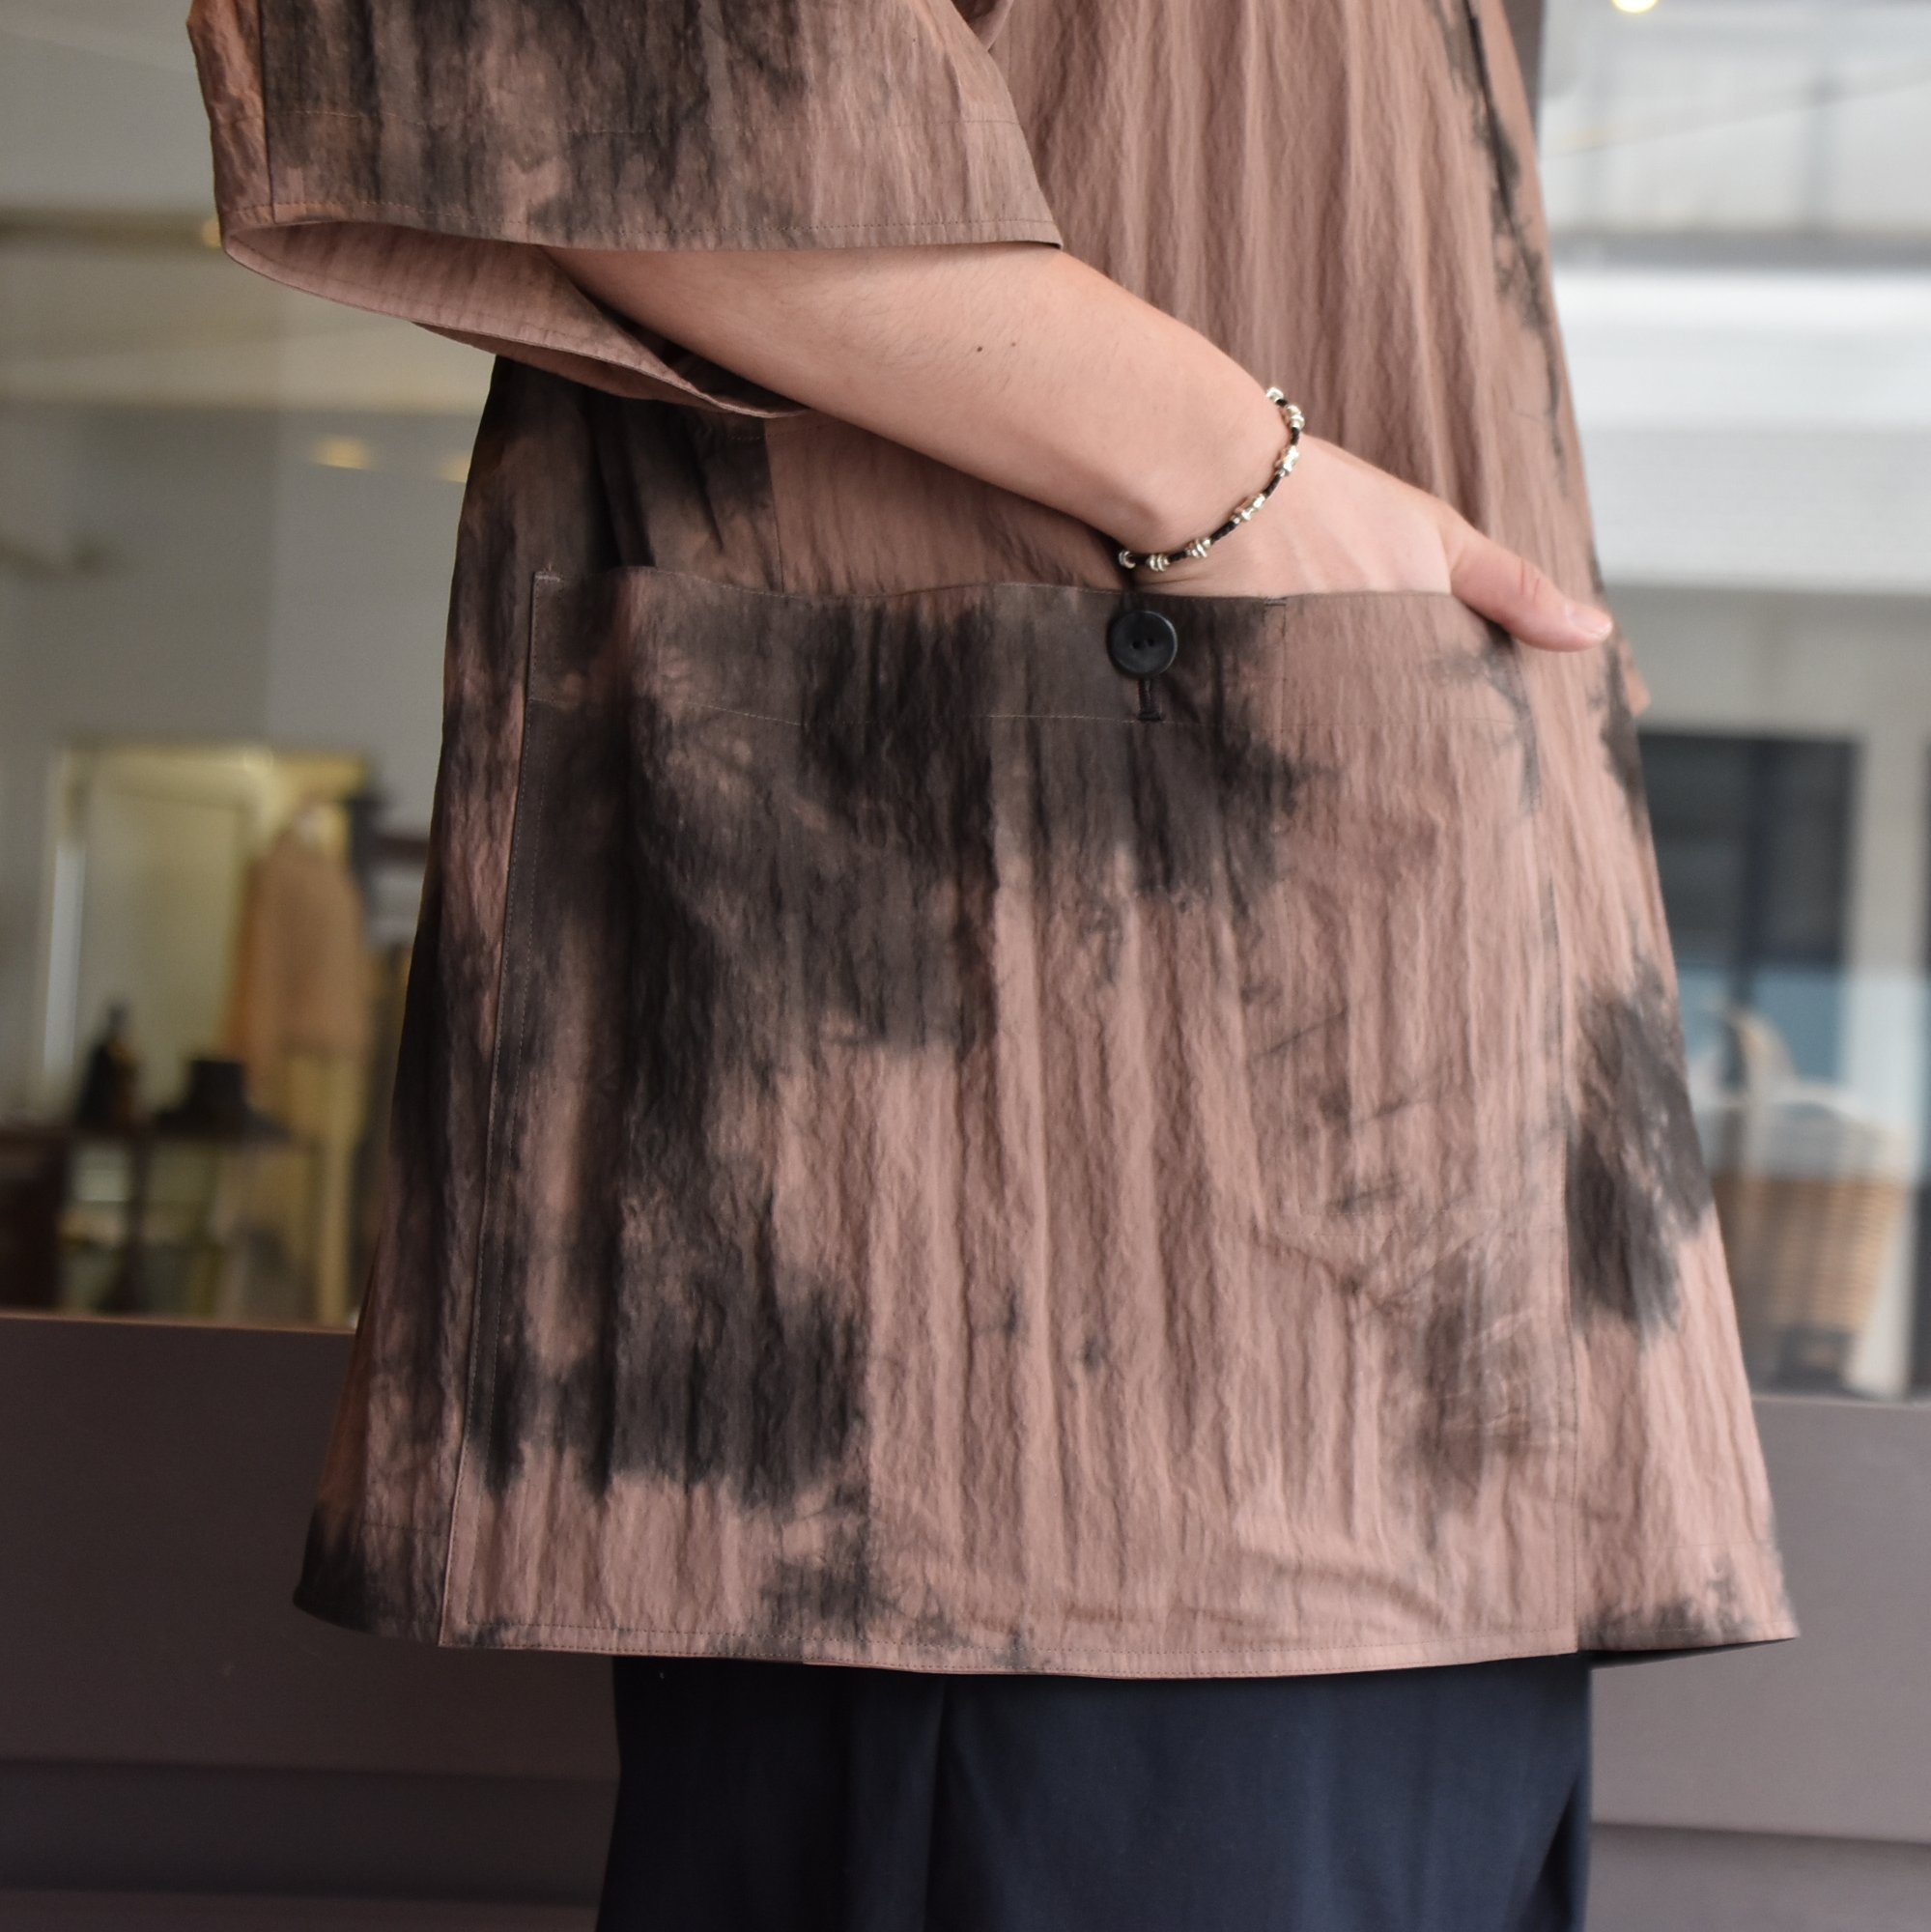 [2021]amachi.(アマチ) Packable Meeting Shirt -Brown Uneven Dye- #AY8-14(3)